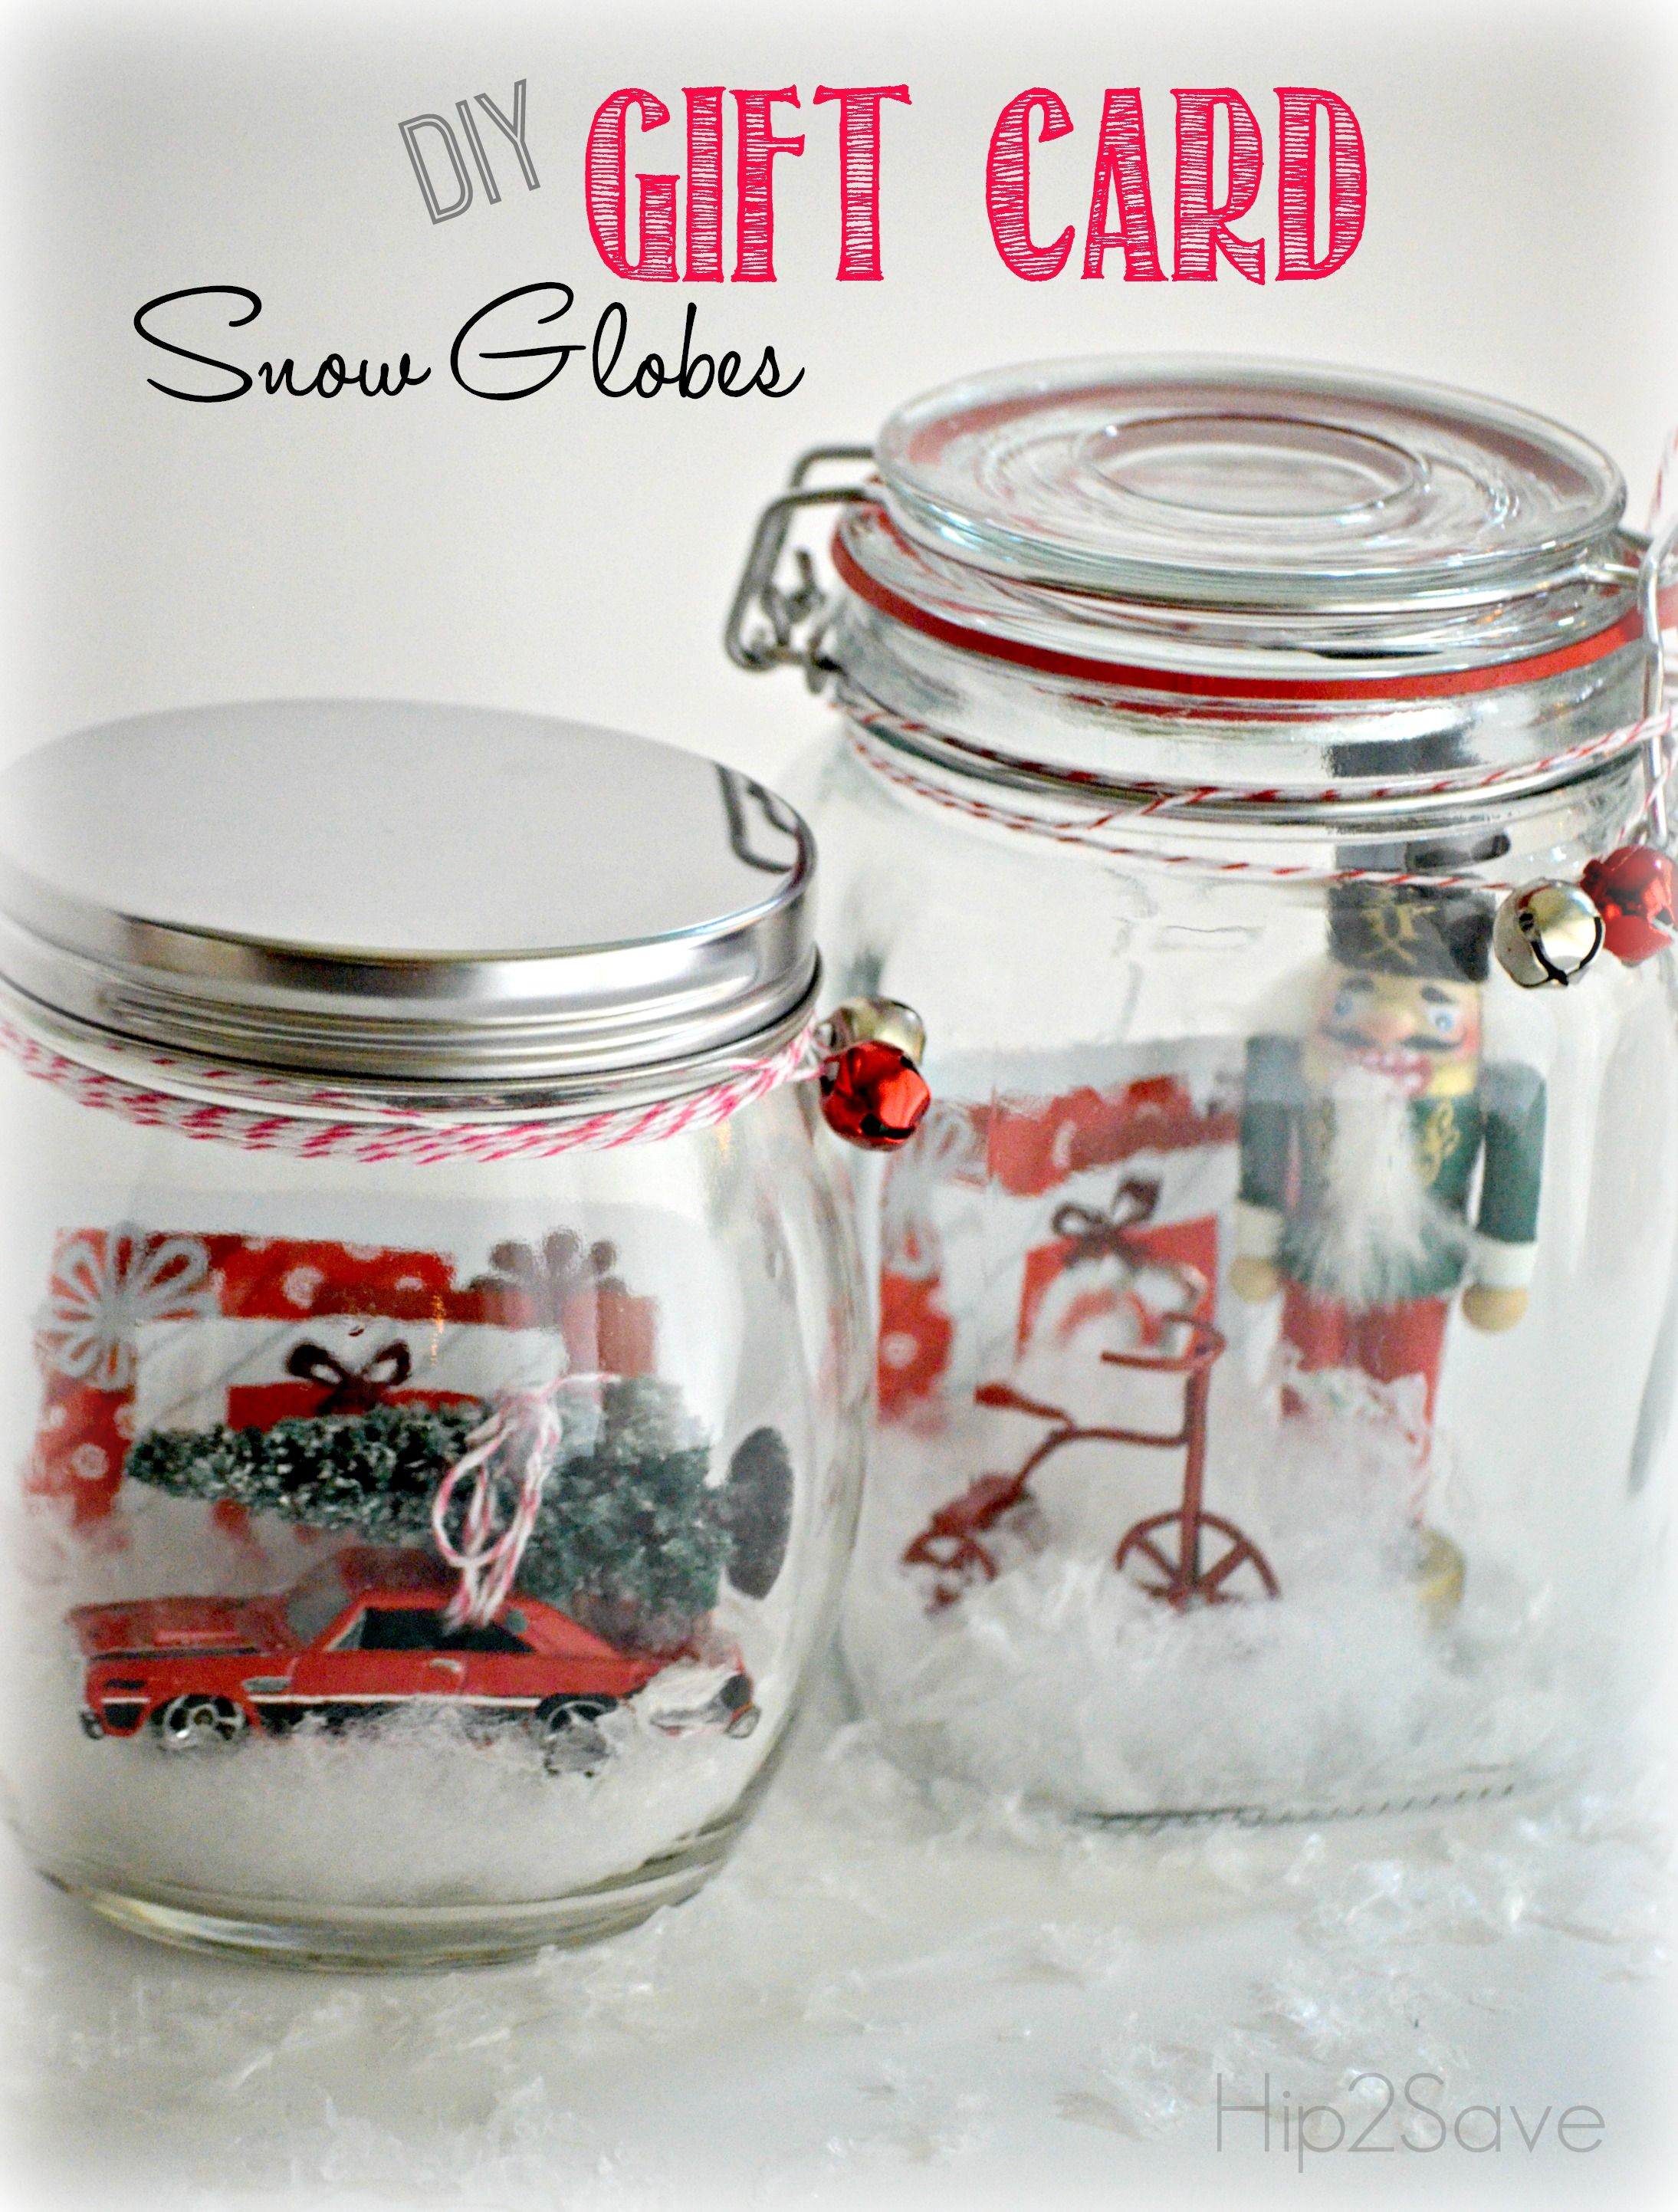 Diy Gift Card Snow Globes Diy Gift Card Wrapping Gift Cards Christmas Gift Card